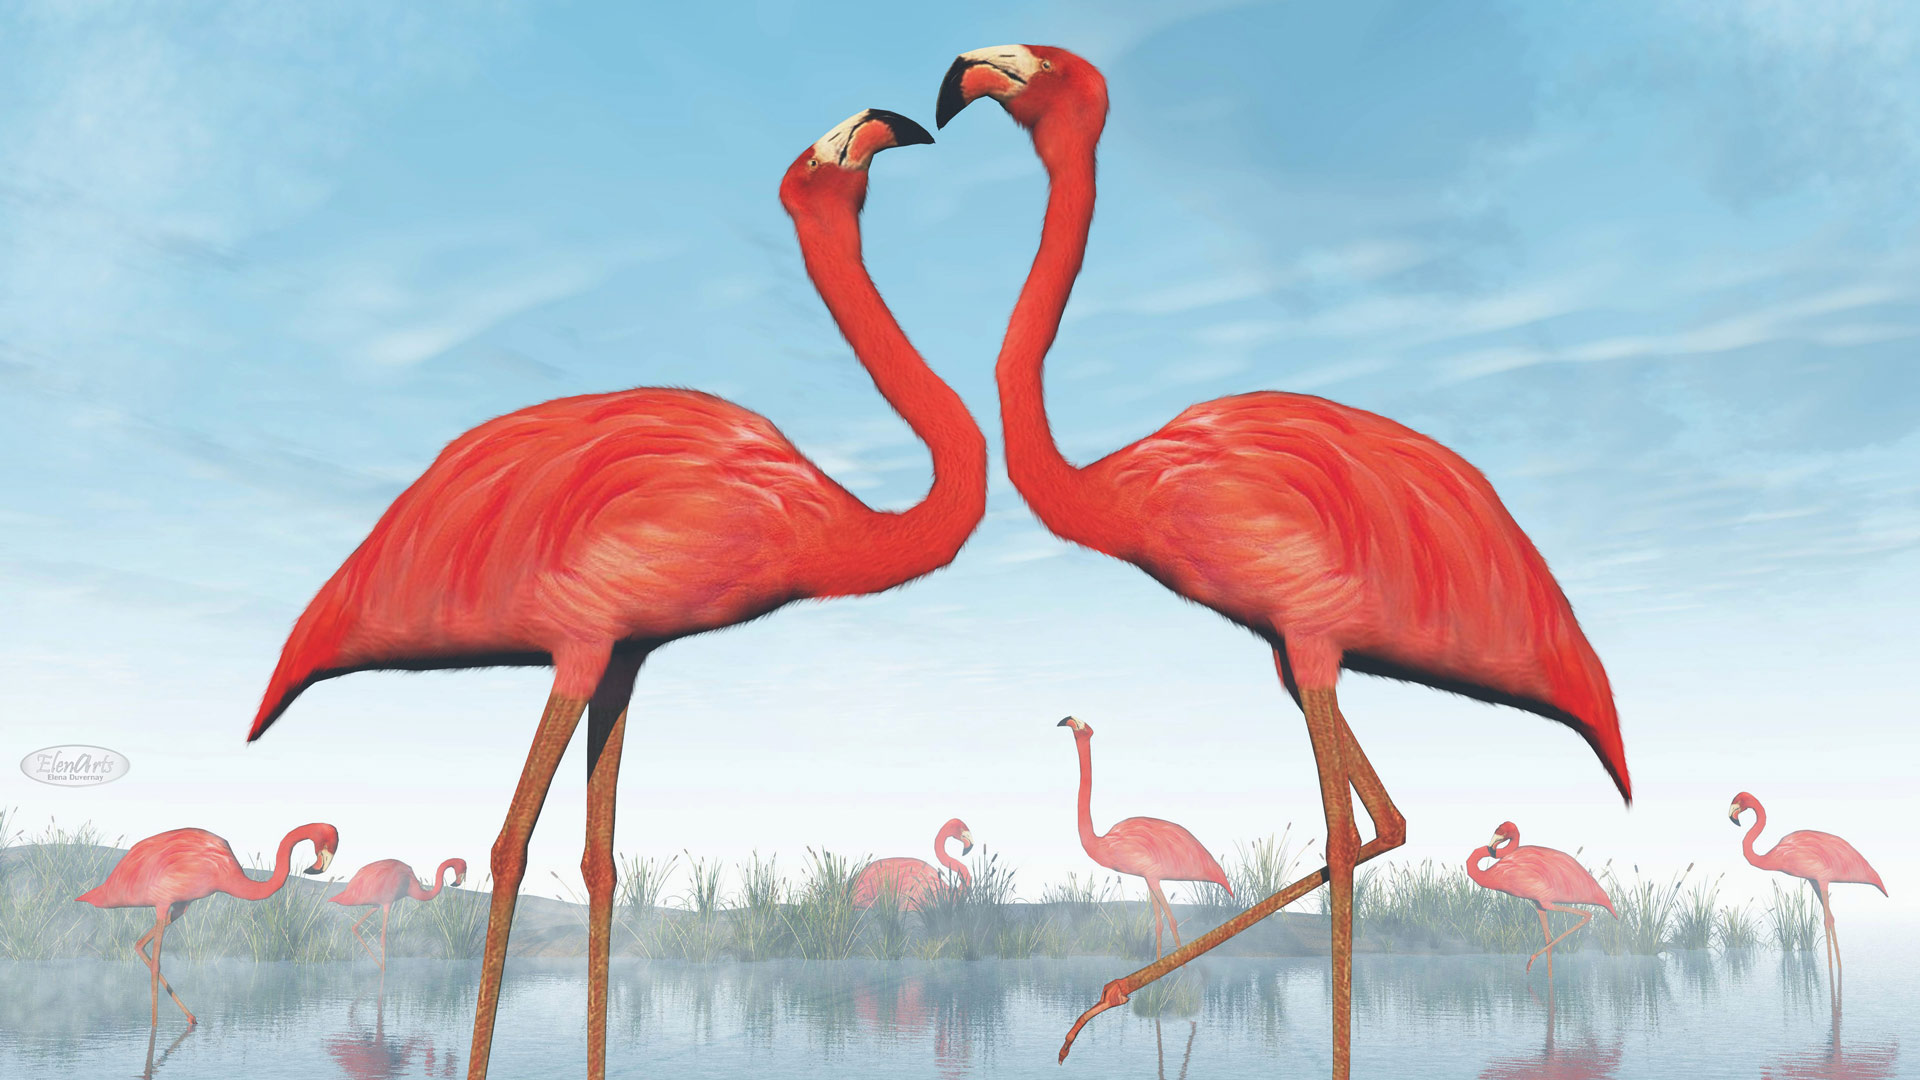 Pink flamingos courtship at the beach by daylight – 3D render